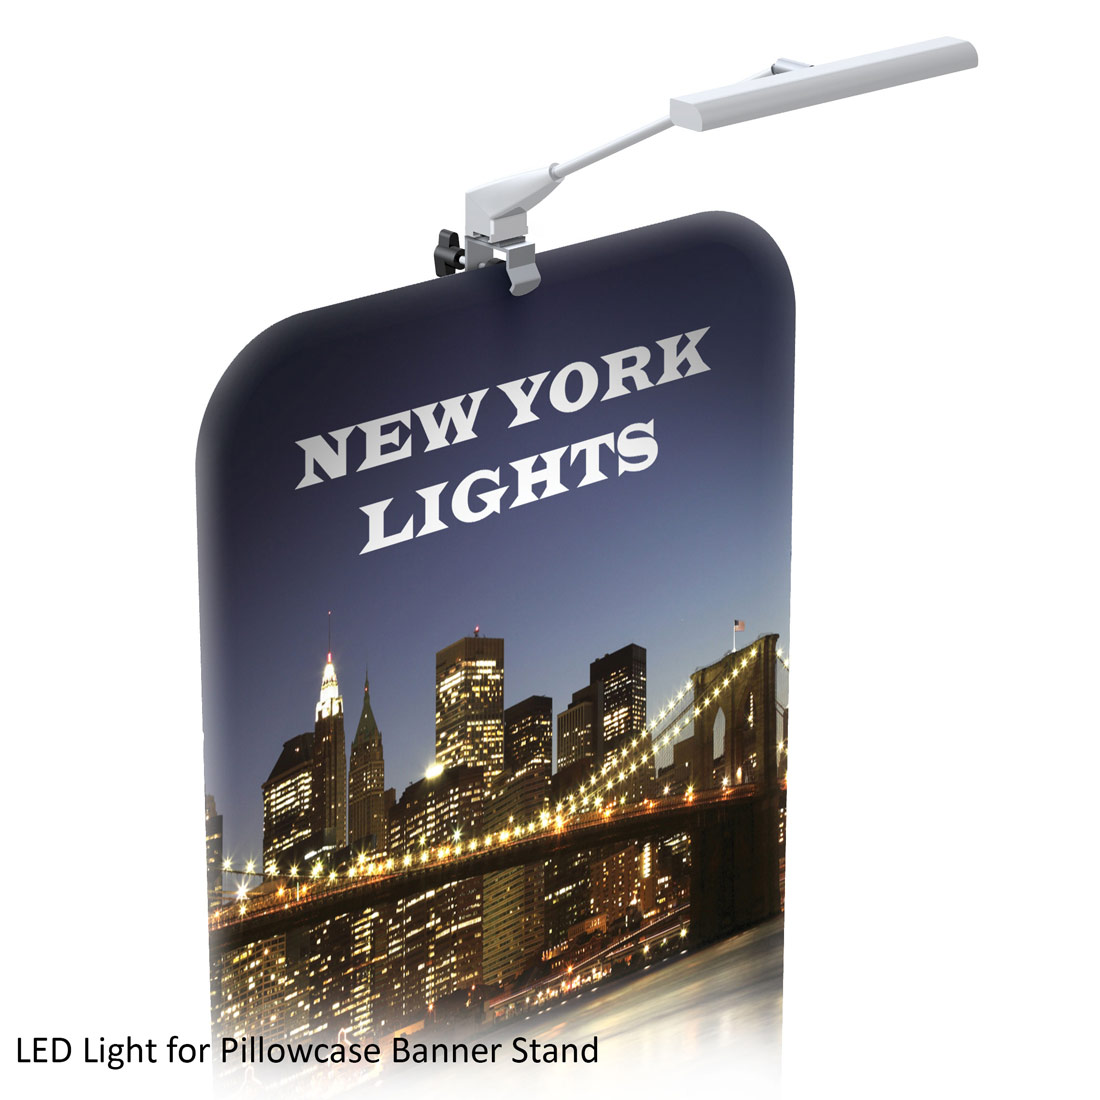 Led Light For Pillowcase Banner Stand